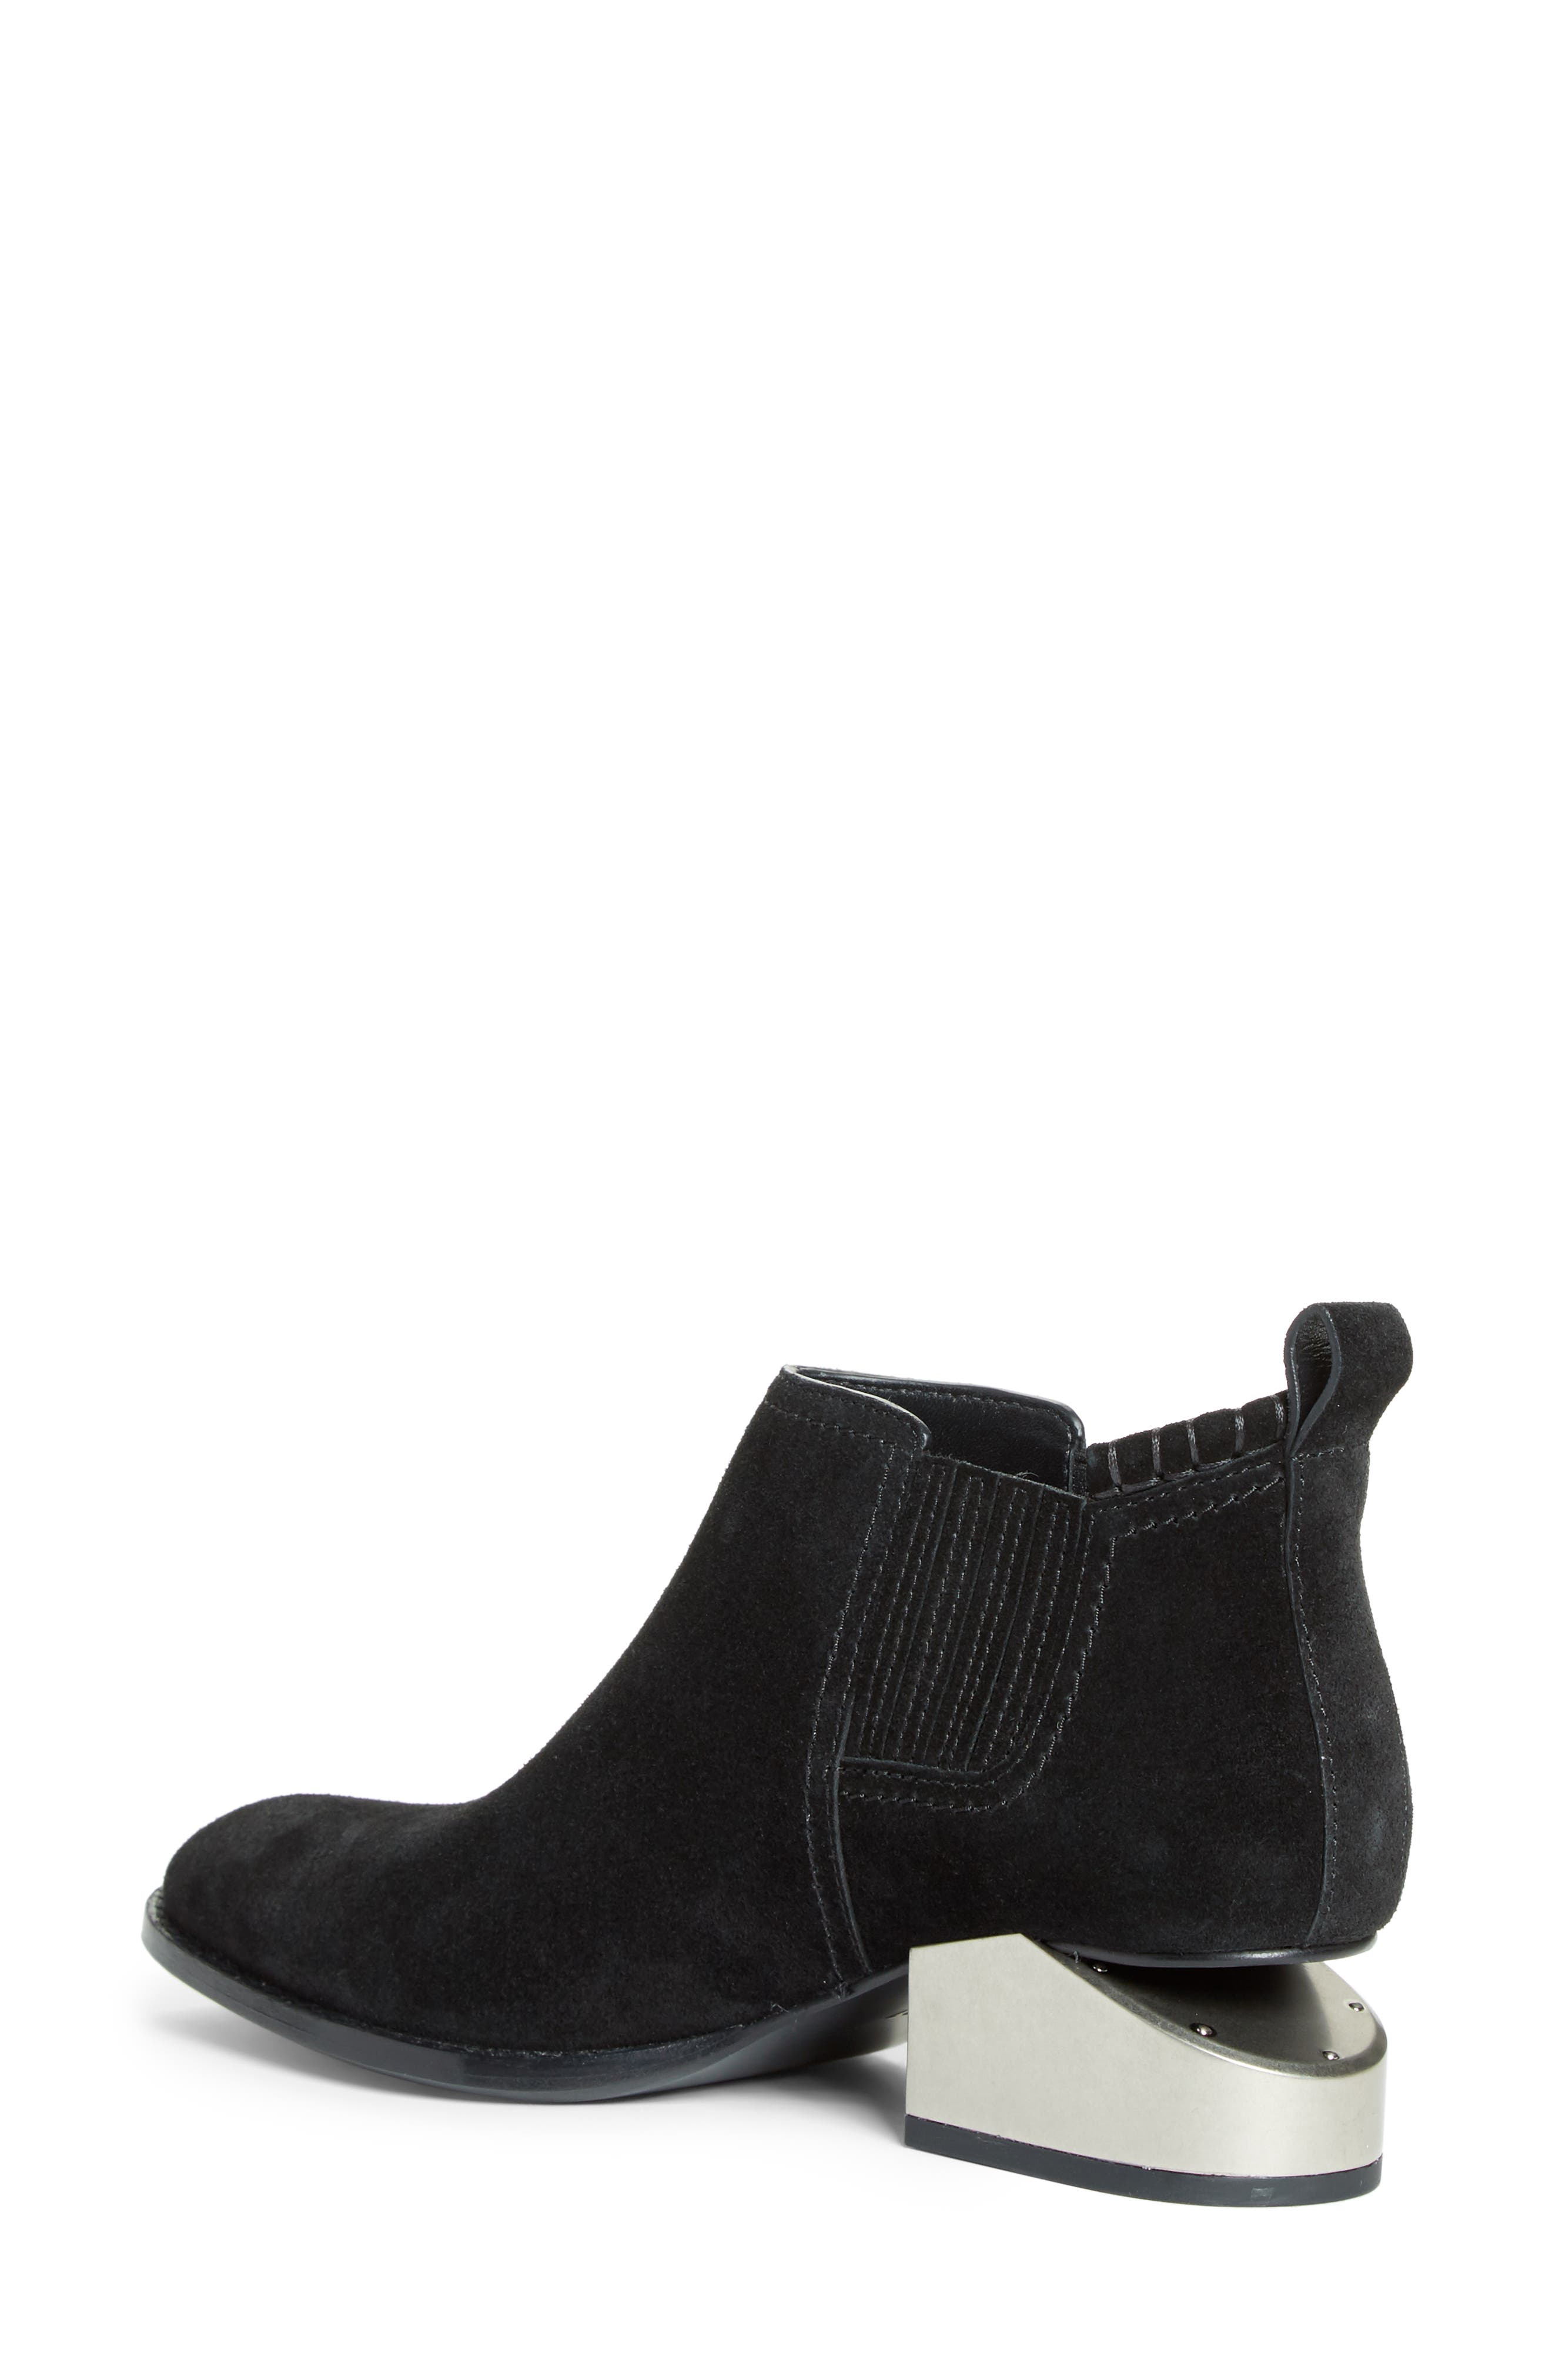 Kori Chelsea Boot,                             Alternate thumbnail 2, color,                             001